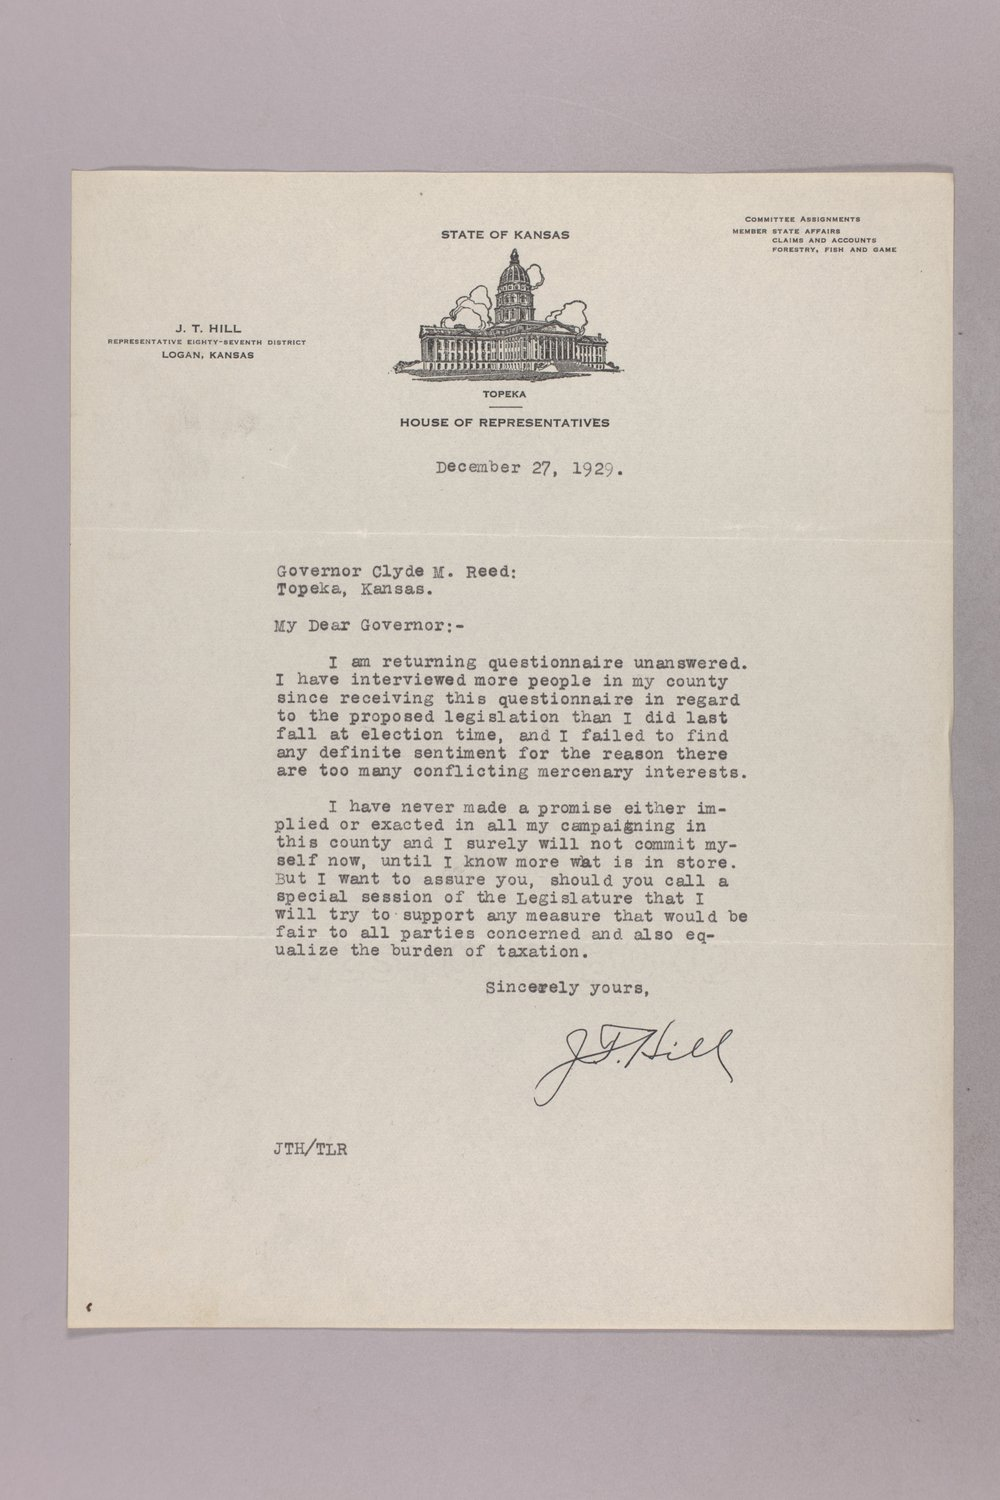 Governor Clyde M. Reed correspondence, tax questionnaires - 5